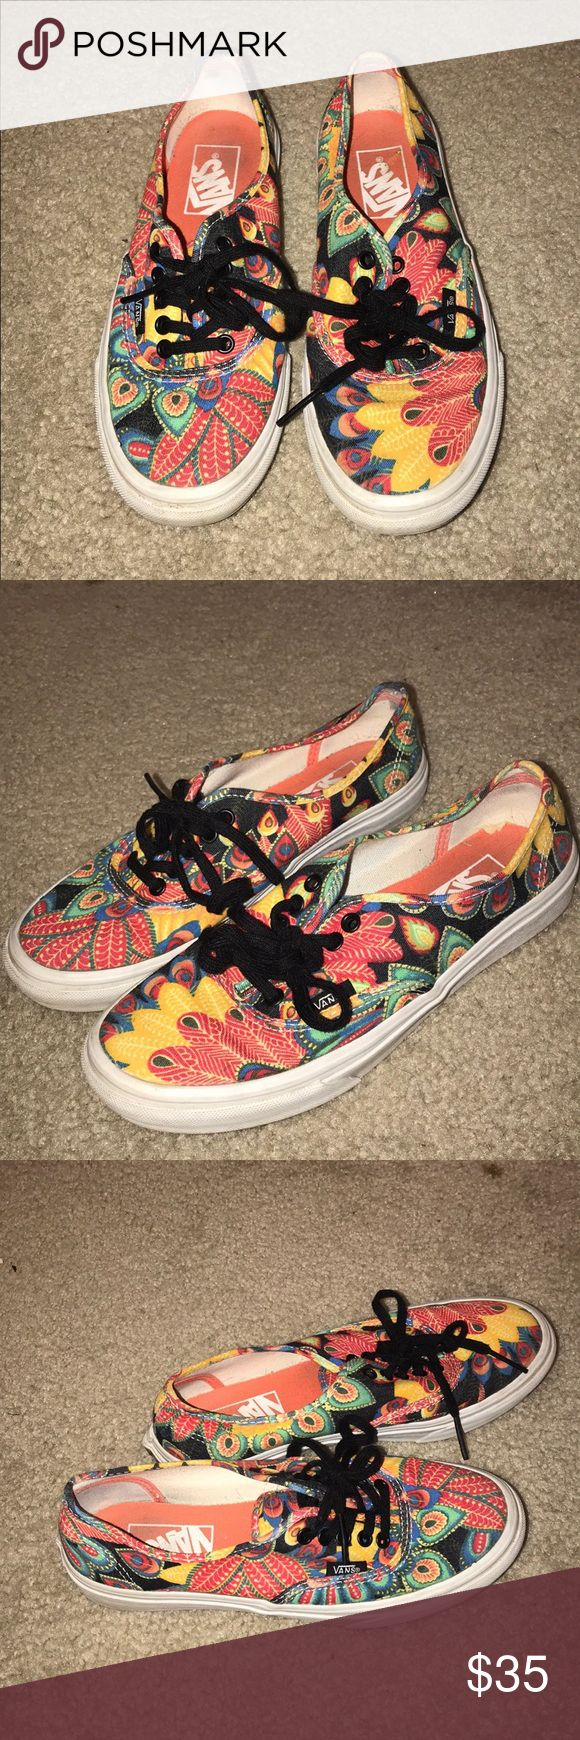 Vans Peacock & leaf colorful pattern Great condition! Very authentic rare colorful leaf & peacock print Vans. Price negotiable Vans Shoes Sneakers